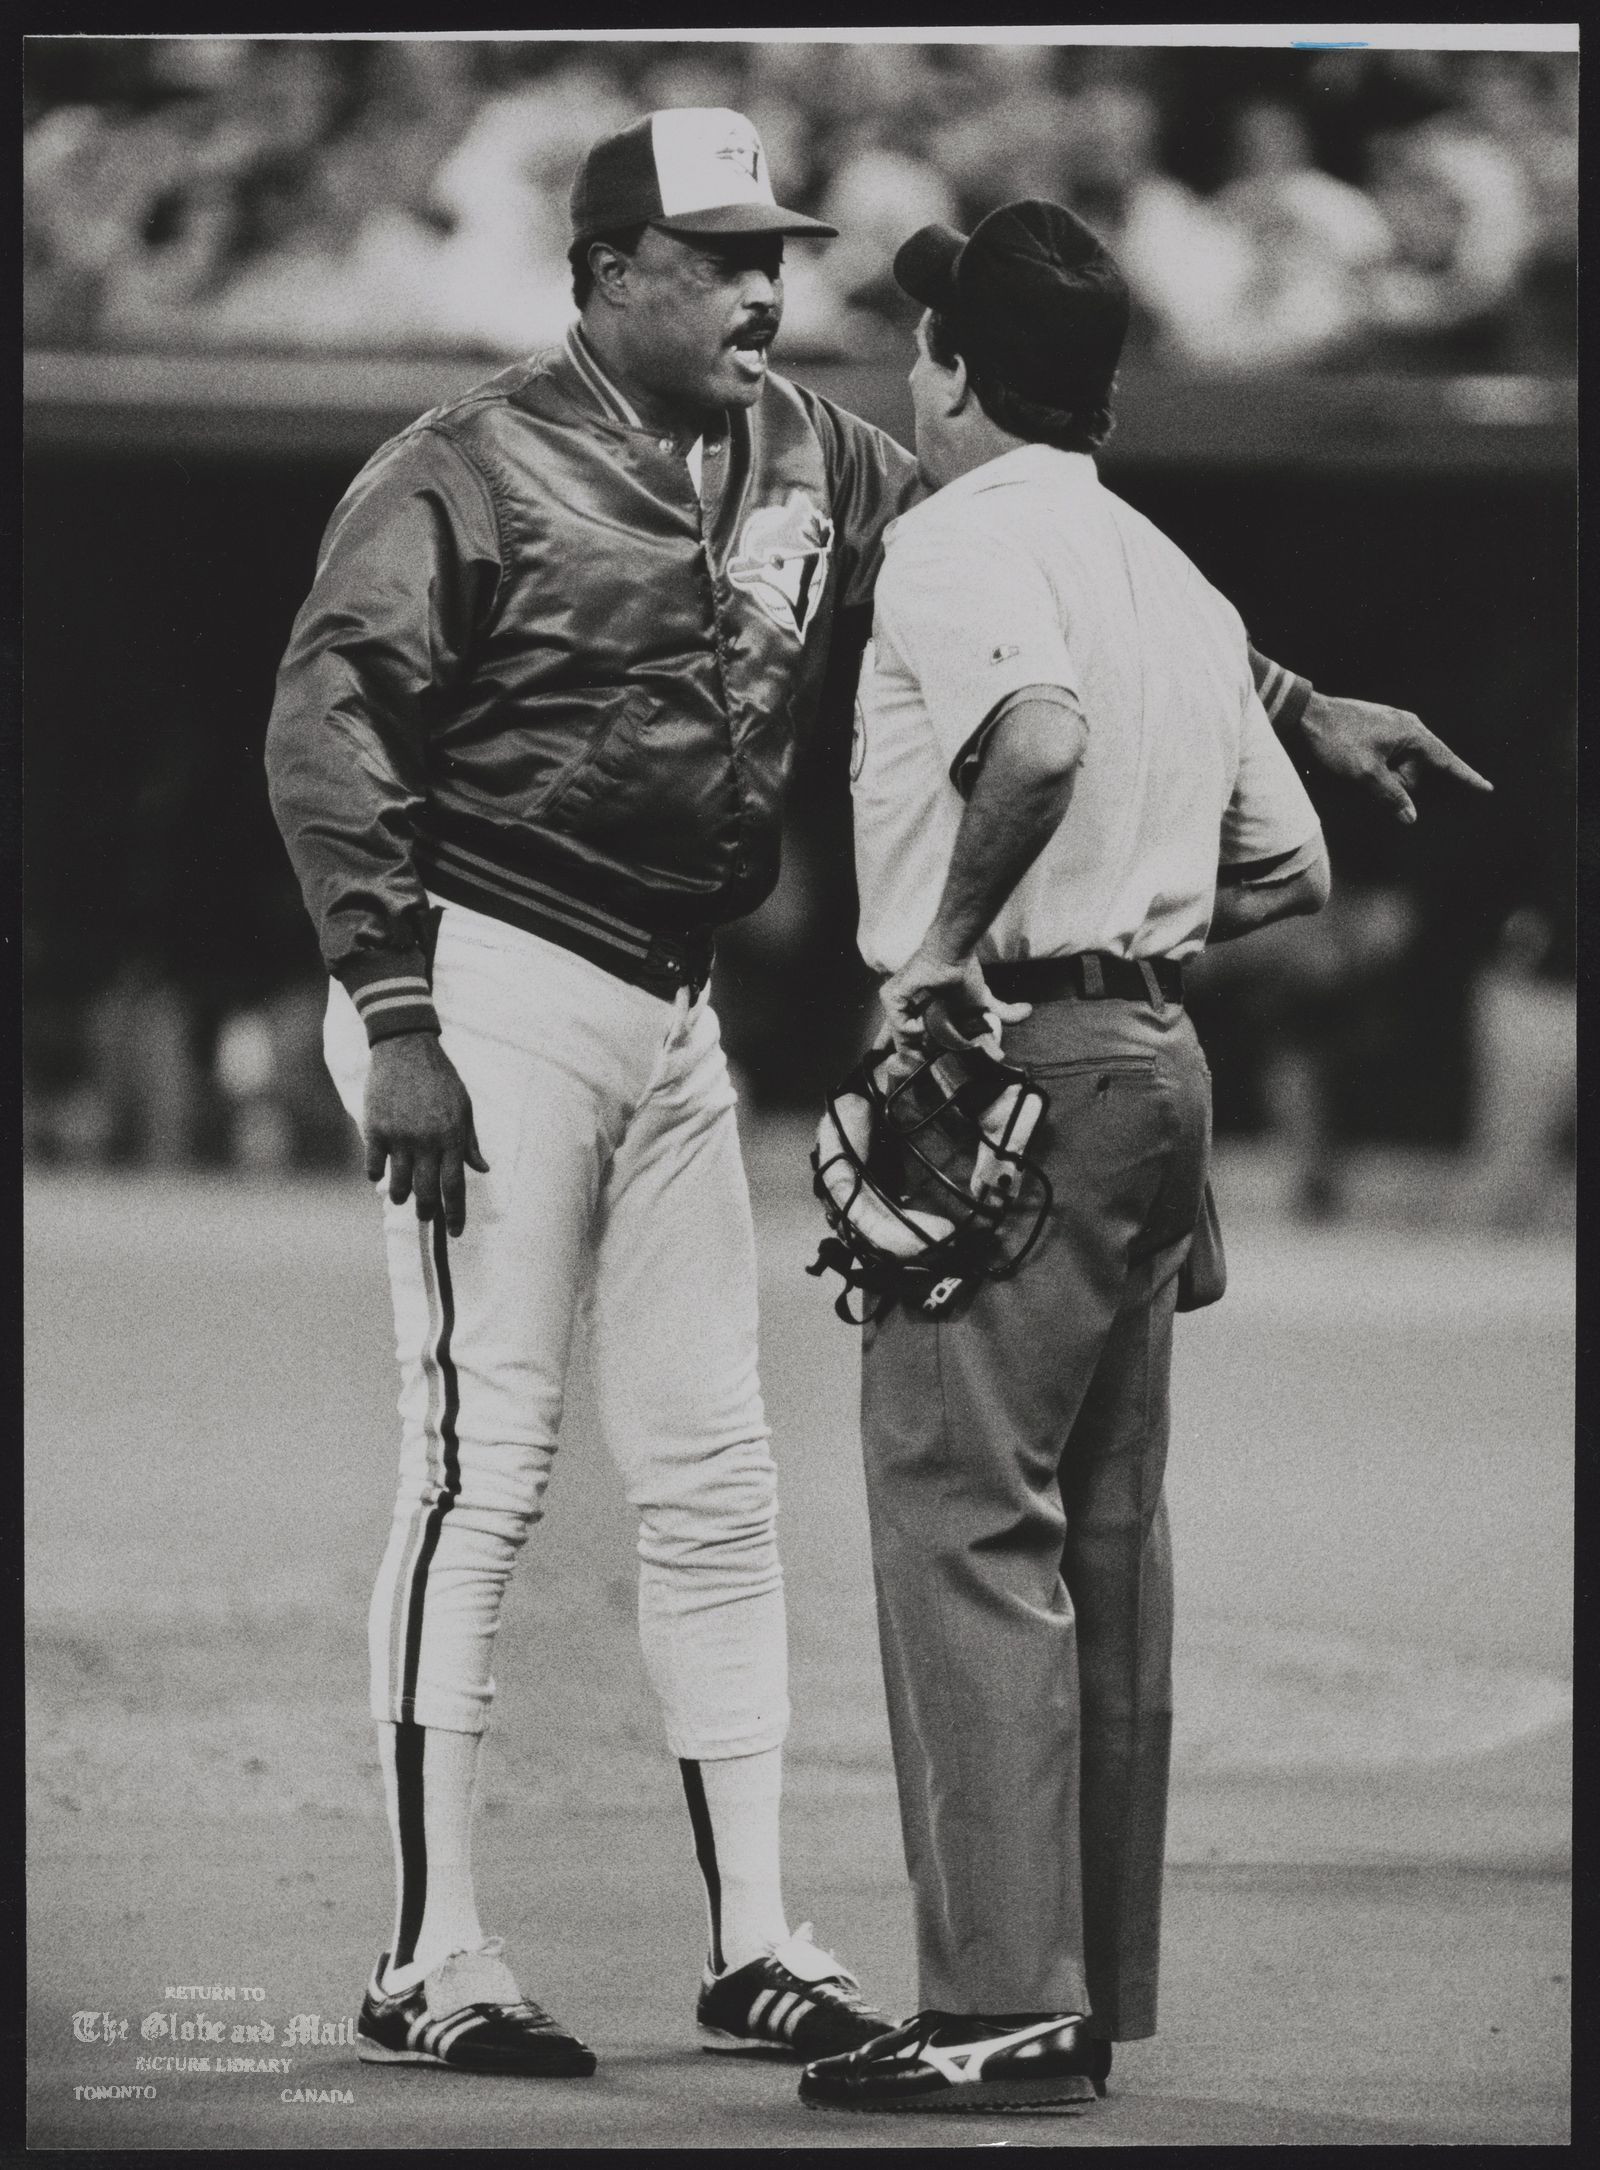 Cito GASTON Baseball Toronto Blue Biue Jays Manager Cito Gaston, left, argues with home plate umpire Mike Reilly during third inning of Game 5 of the American League Championship Series against Minnesota Twins at Toronto's SkyDome. Gaston was ejected from the game.